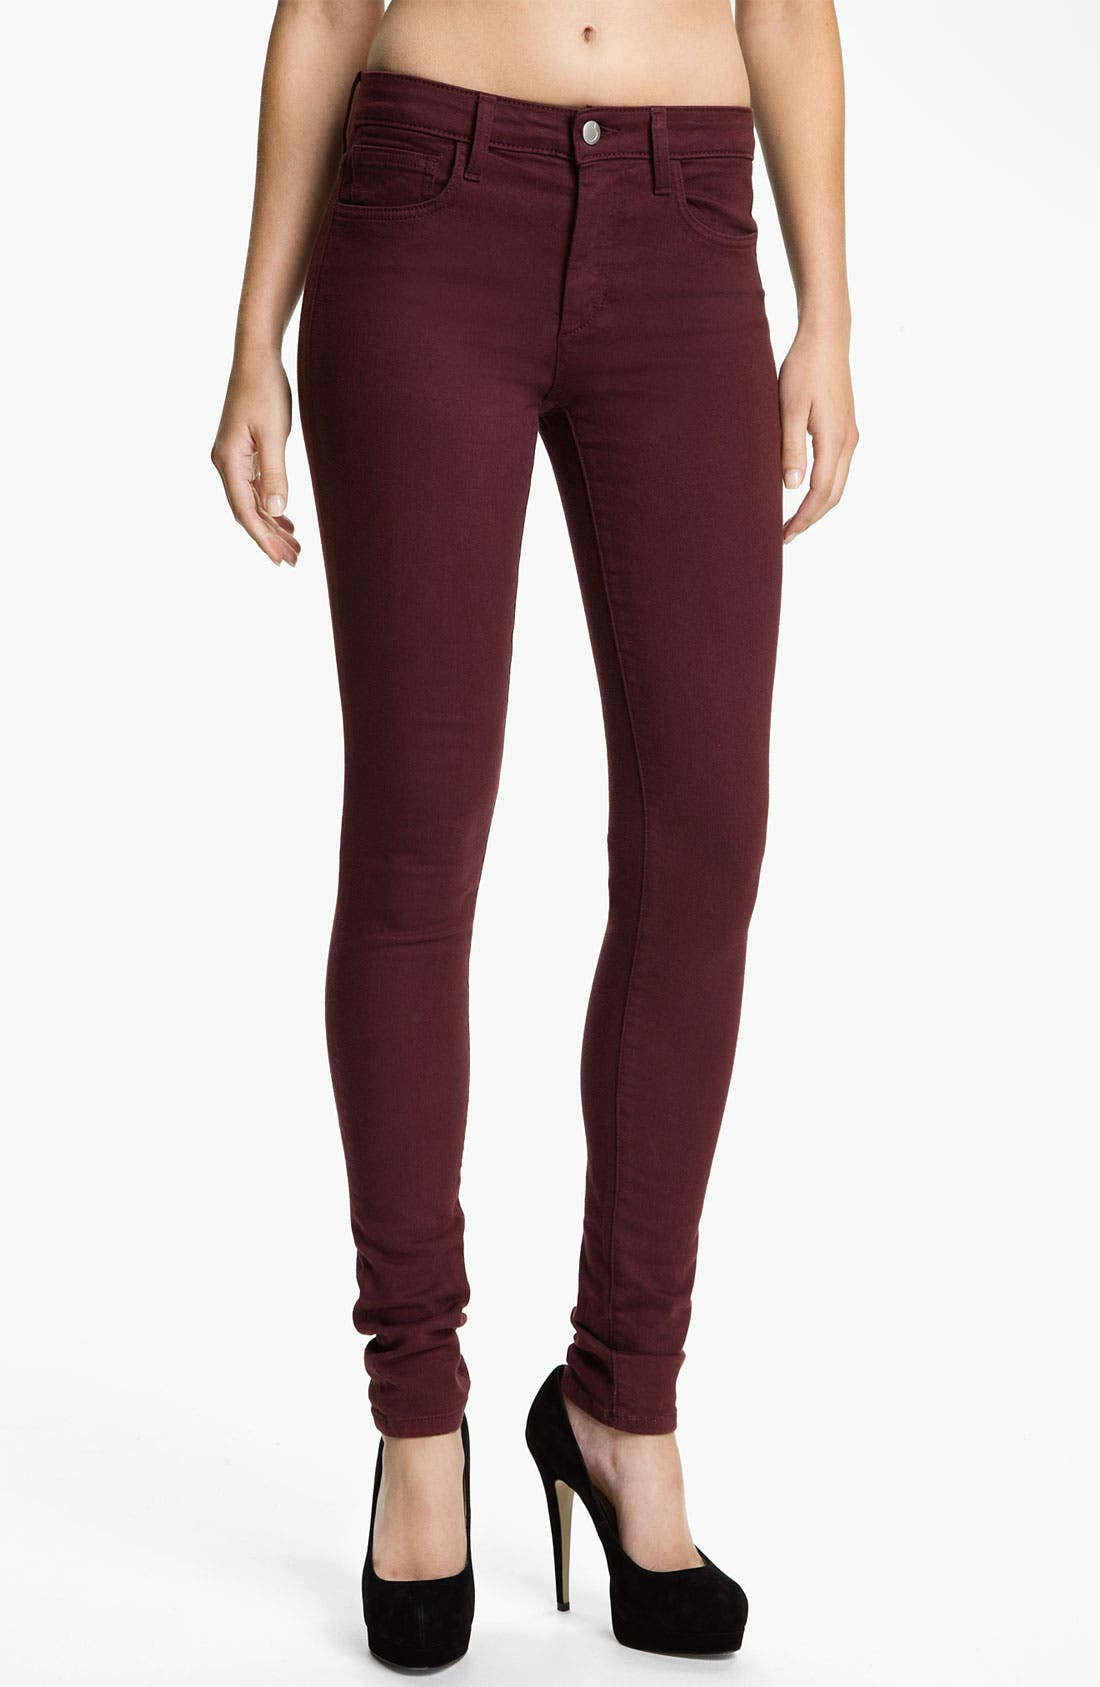 Alternate Image 1 Selected - Joe's Skinny Stretch Jeans (Bordeaux)